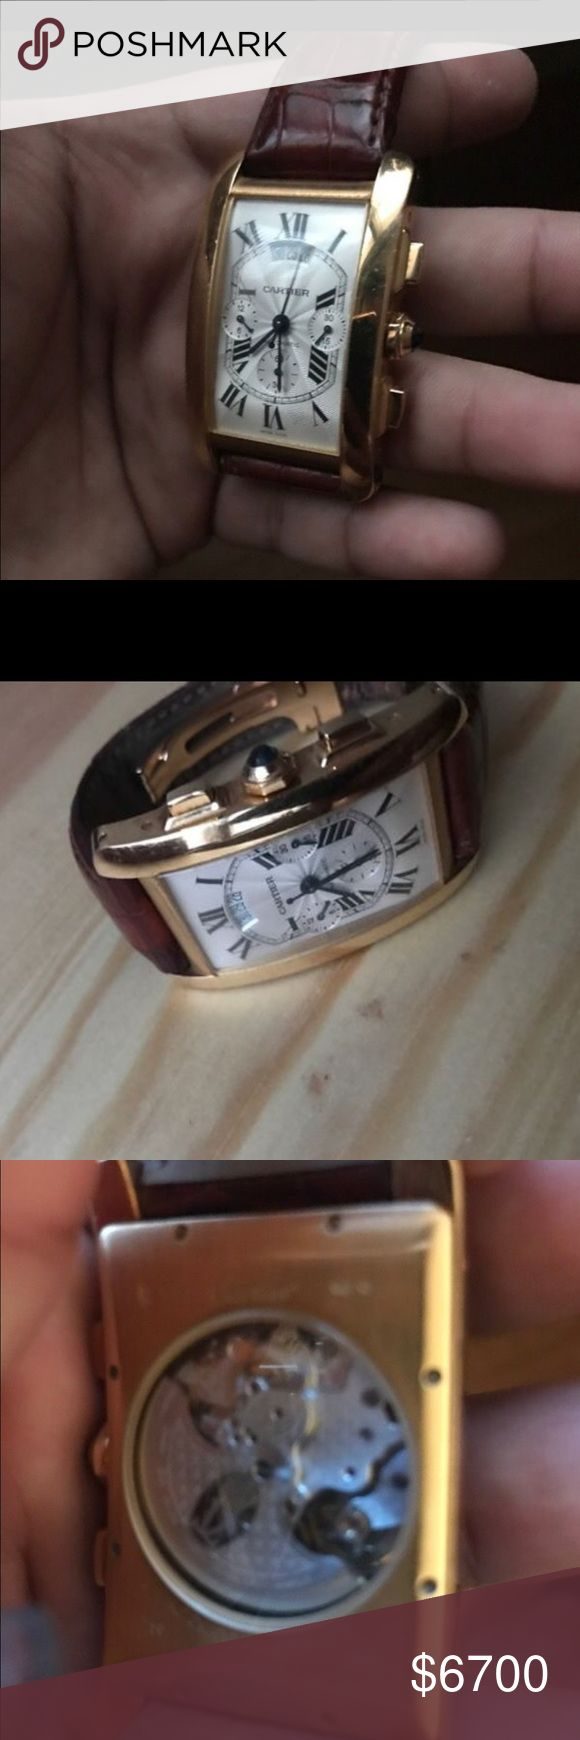 Cartier Tank Americaine Cartier watch used, cartier tank americaine 18k Gold Automatic Gronograph +Calendar.With certificate.Rare watch Sapphire crystal Crown topped with blue sapphire cabochon. Sapphire Glass. Cartier Accessories Watches